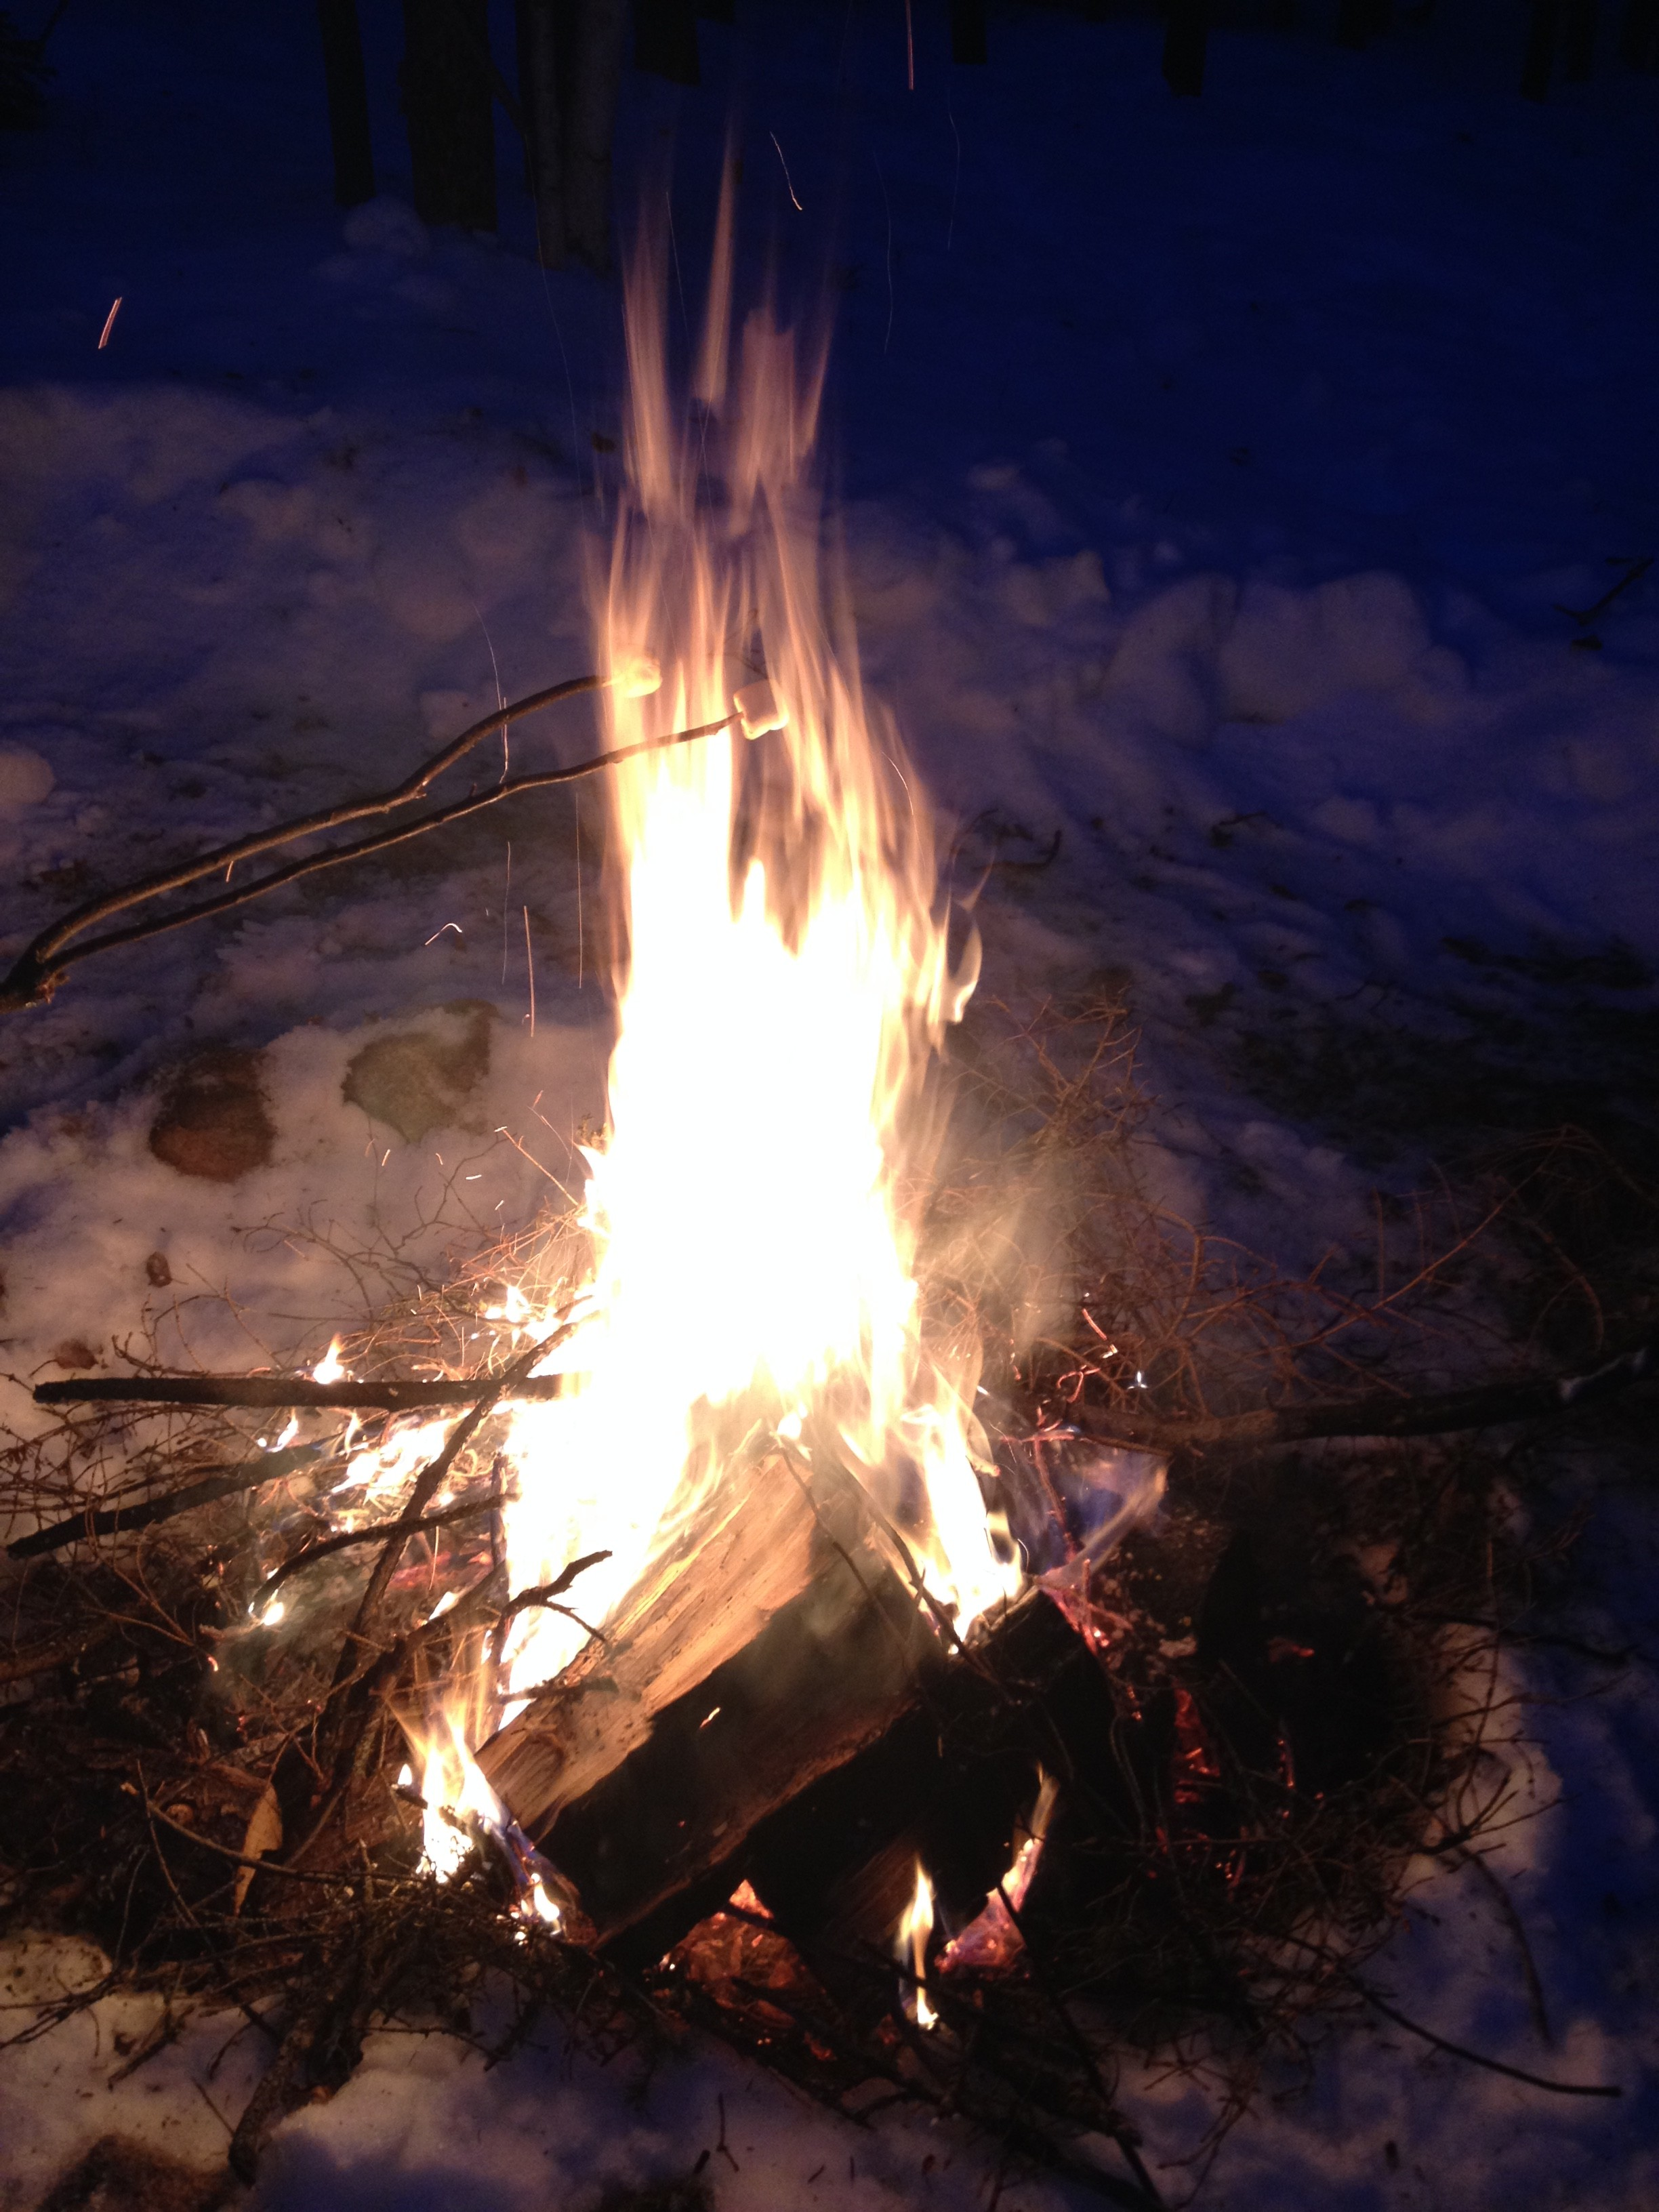 Roasting Marshmallows By The Campfire, Northwest Territories